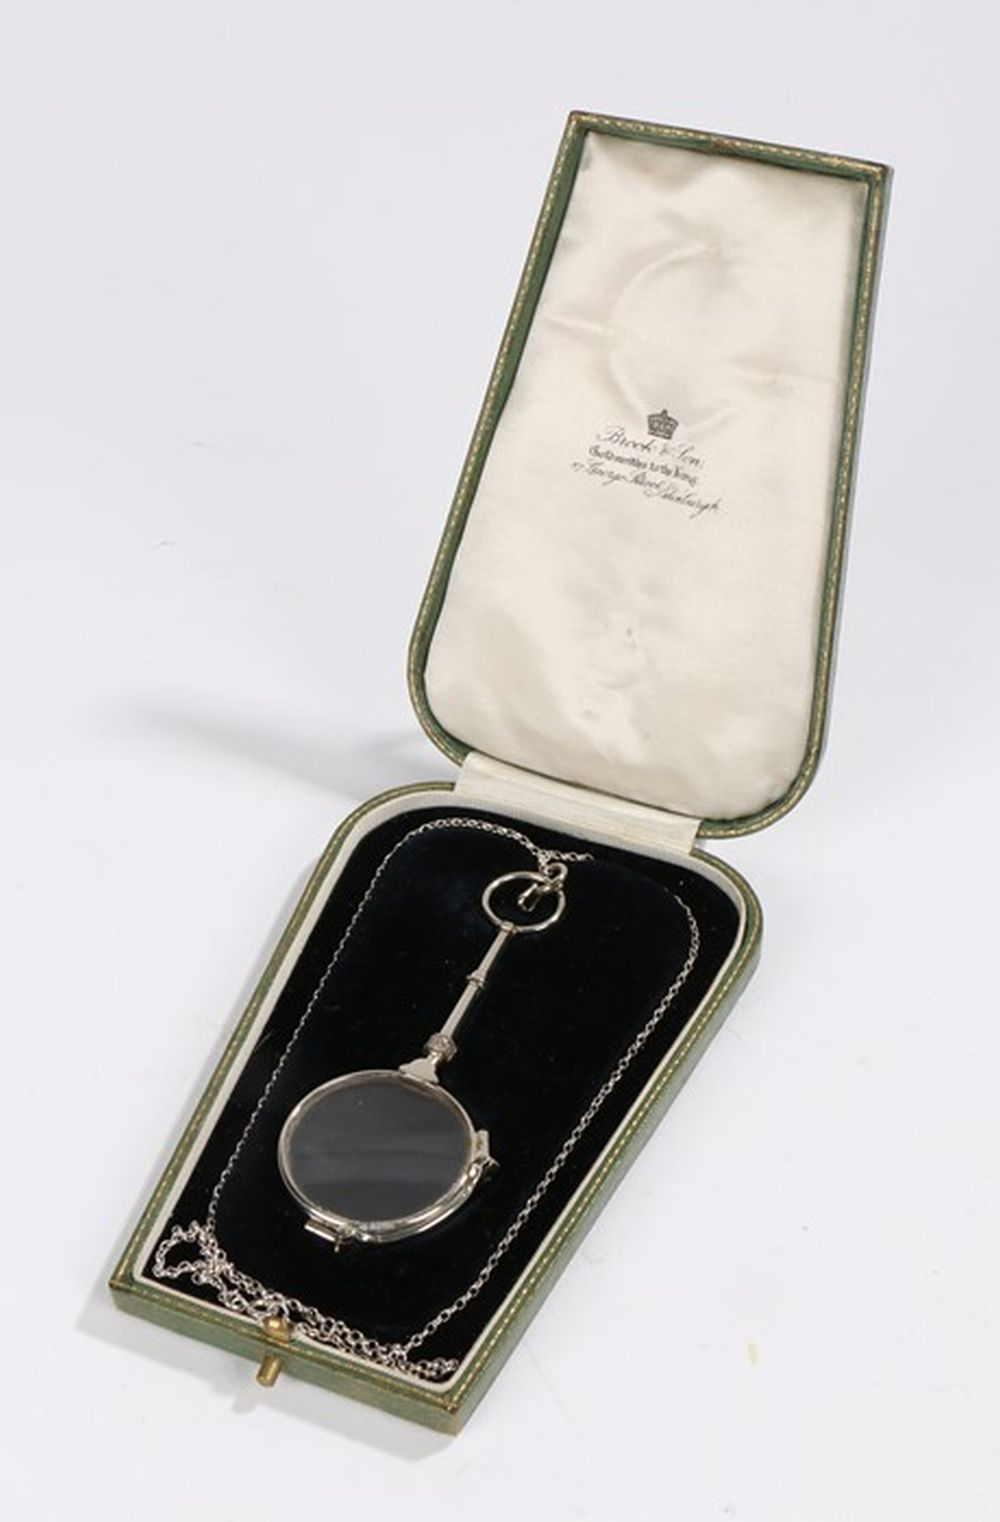 Pair of Continental white metal folding glasses, on a white metal chain, housed in a black velvet li